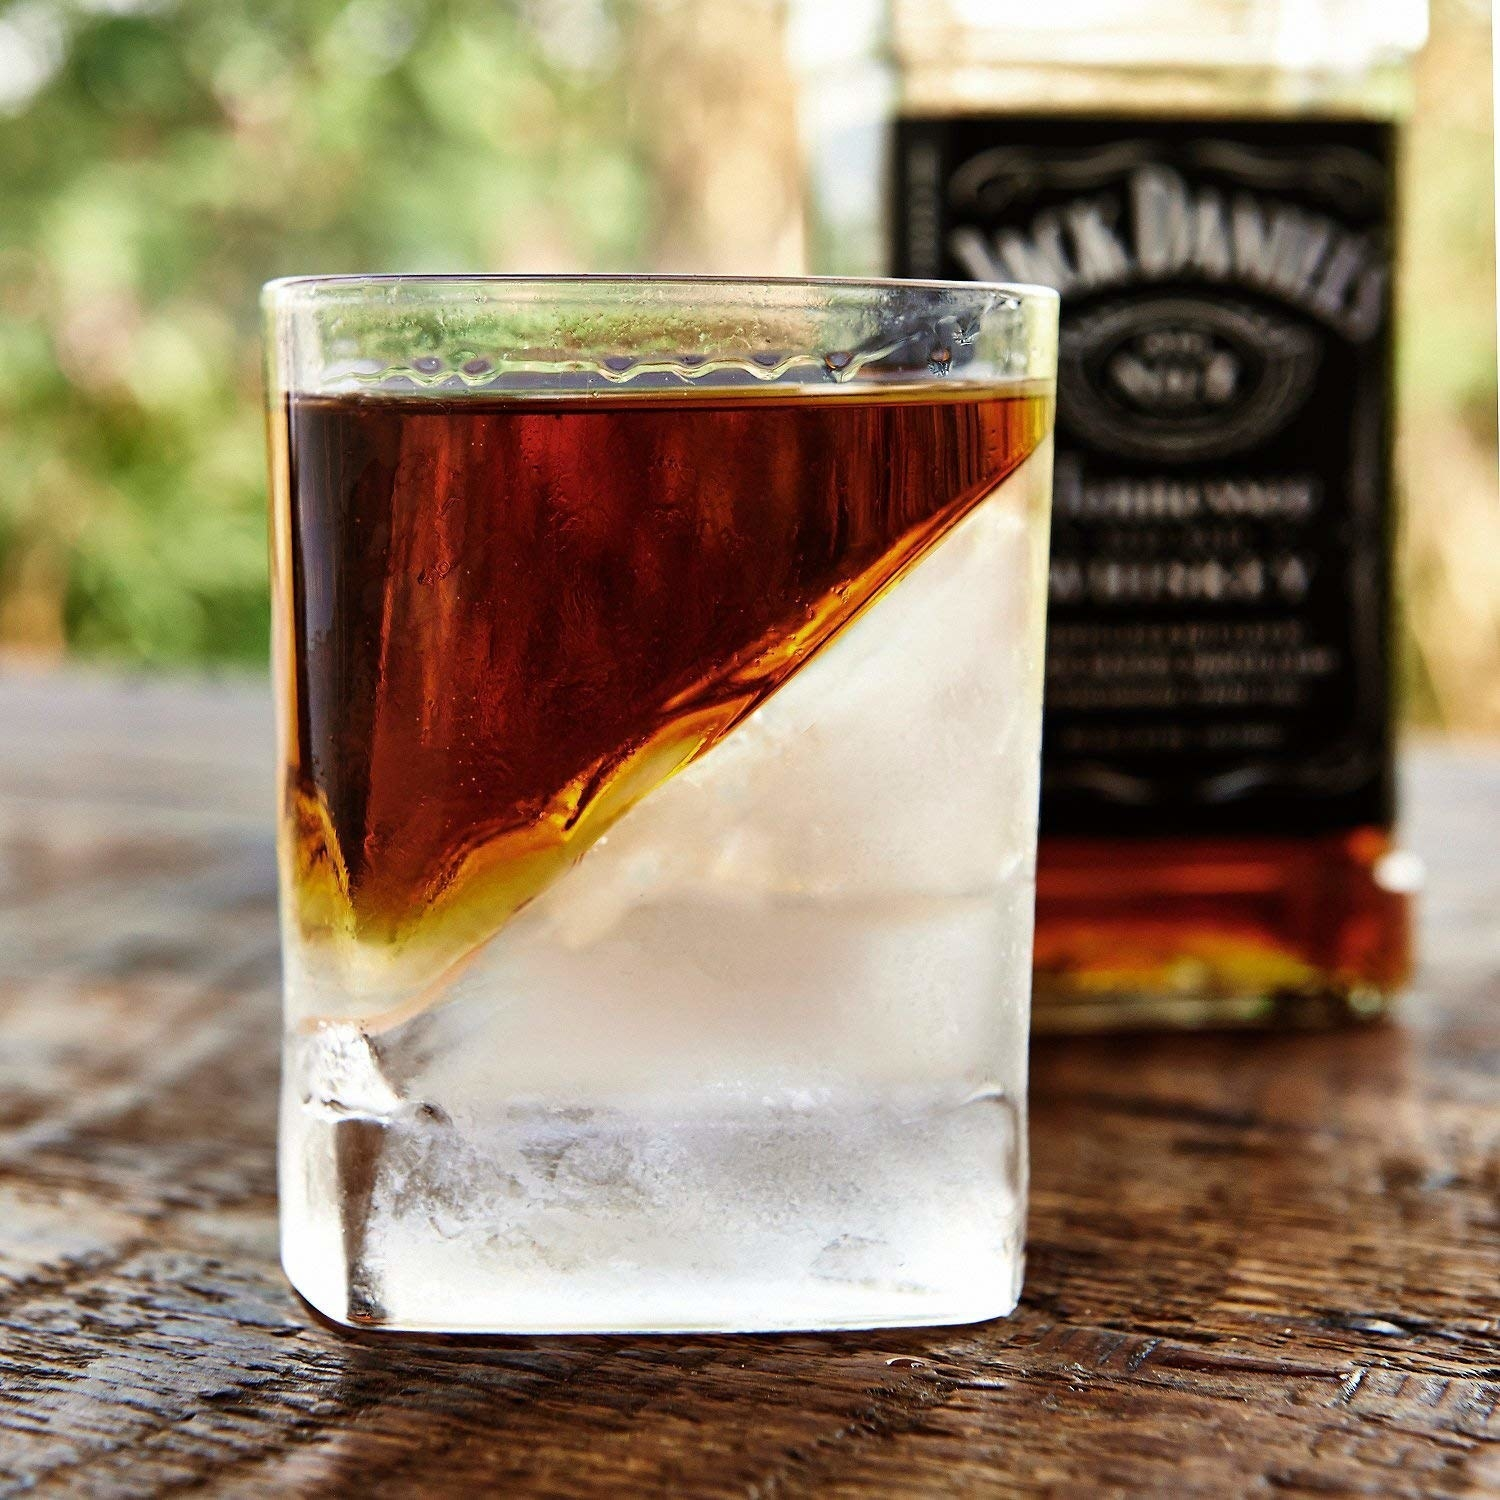 the glass with ice and Whiskey inside